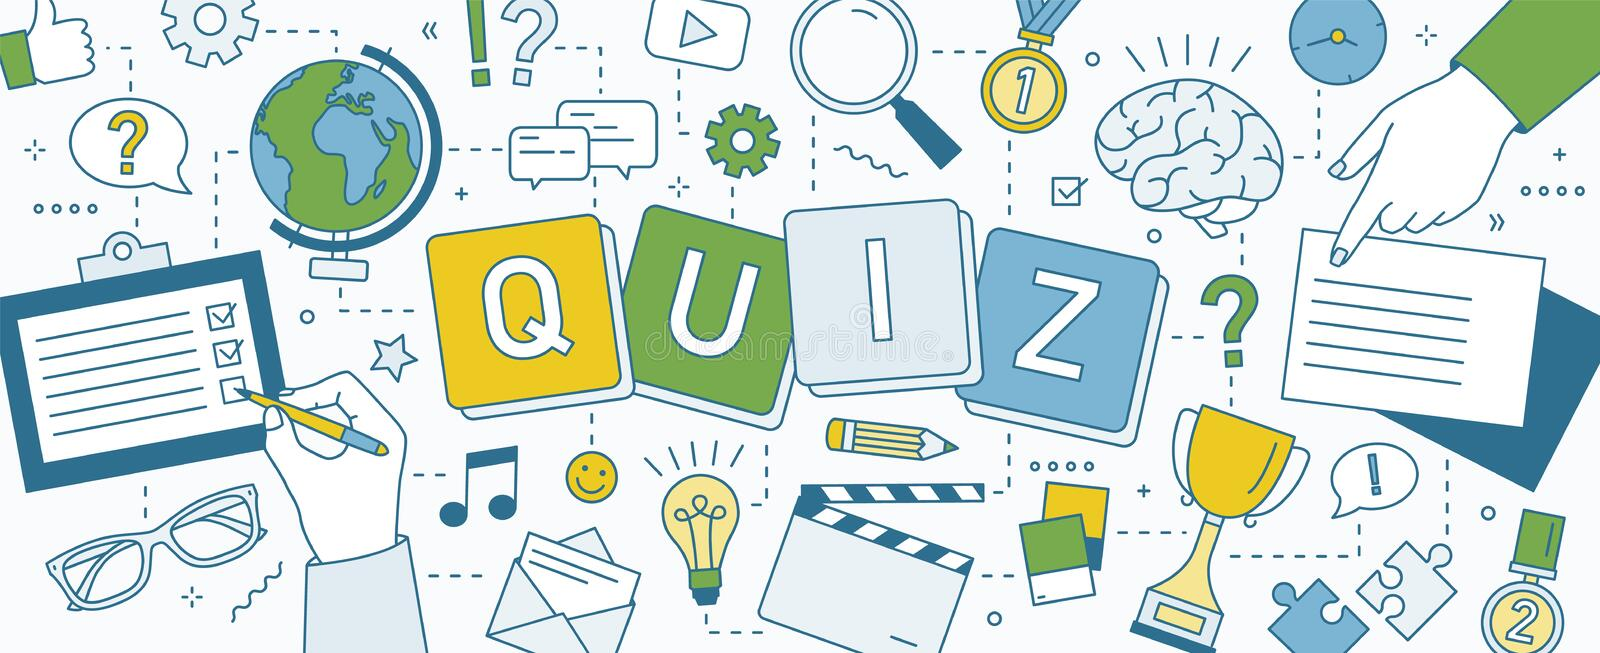 Horizontal banner with hands of people solving puzzles, playing intellectual game and answering smart quiz questions. Test of intelligence or intellect royalty free illustration